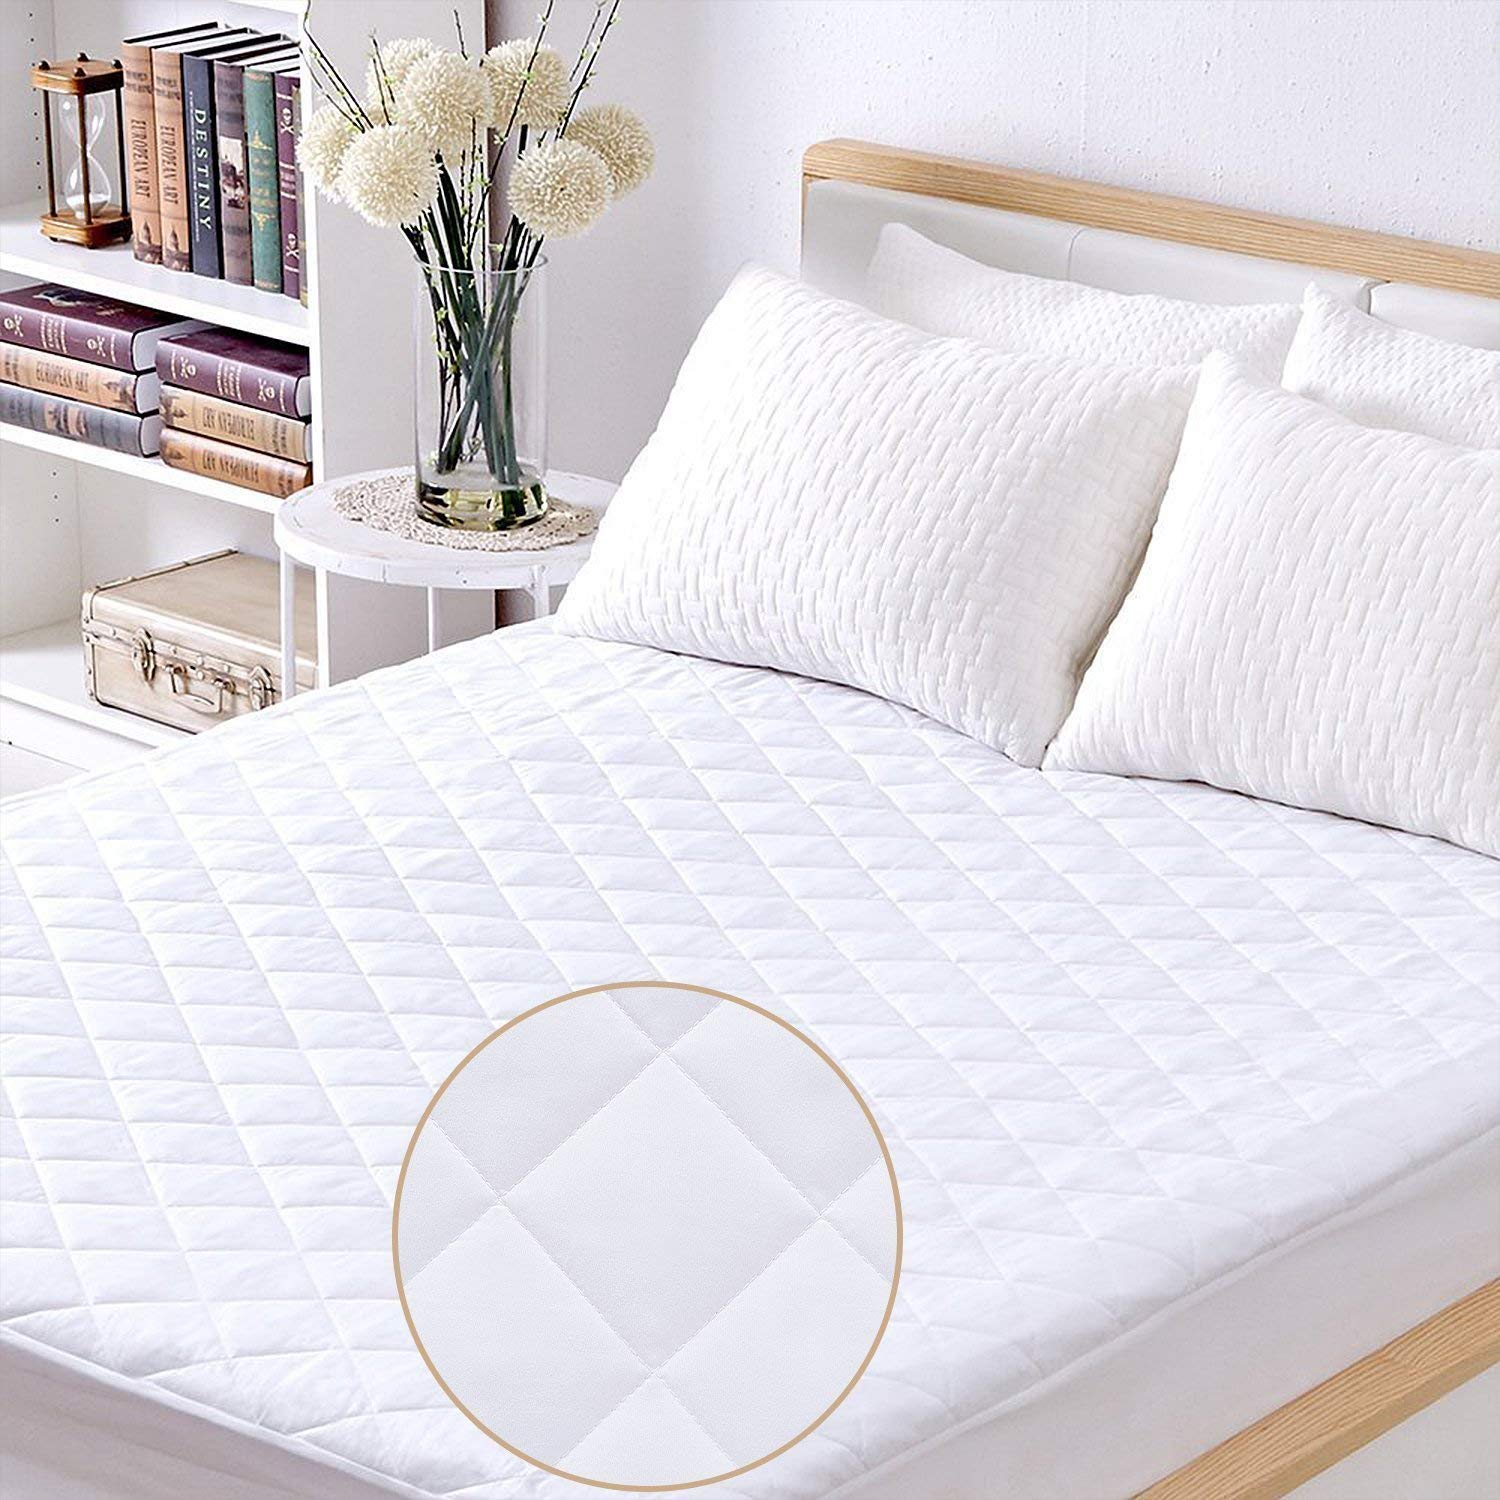 Twin Size Mattress Pad 100% Waterproof Hypoallergenic Quilted Fitted Mattress Cover, Stretched to Fit Deep Pocket Mattress Protector- Vinyl Free Suntrip Textiles